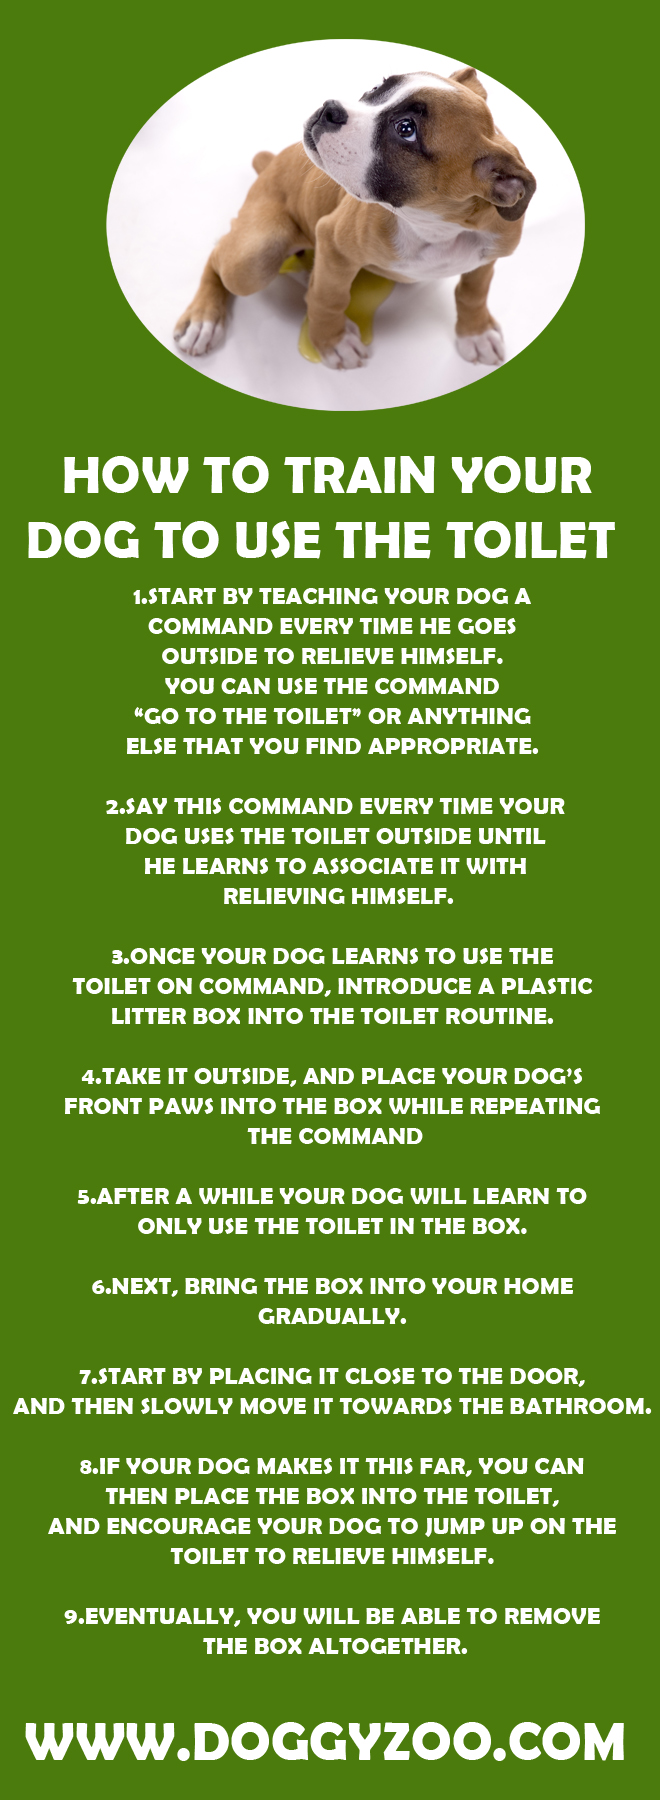 How To Train Your Dog To Use The Bathroom Outside 28 Images How To Train Your Dog To Attack